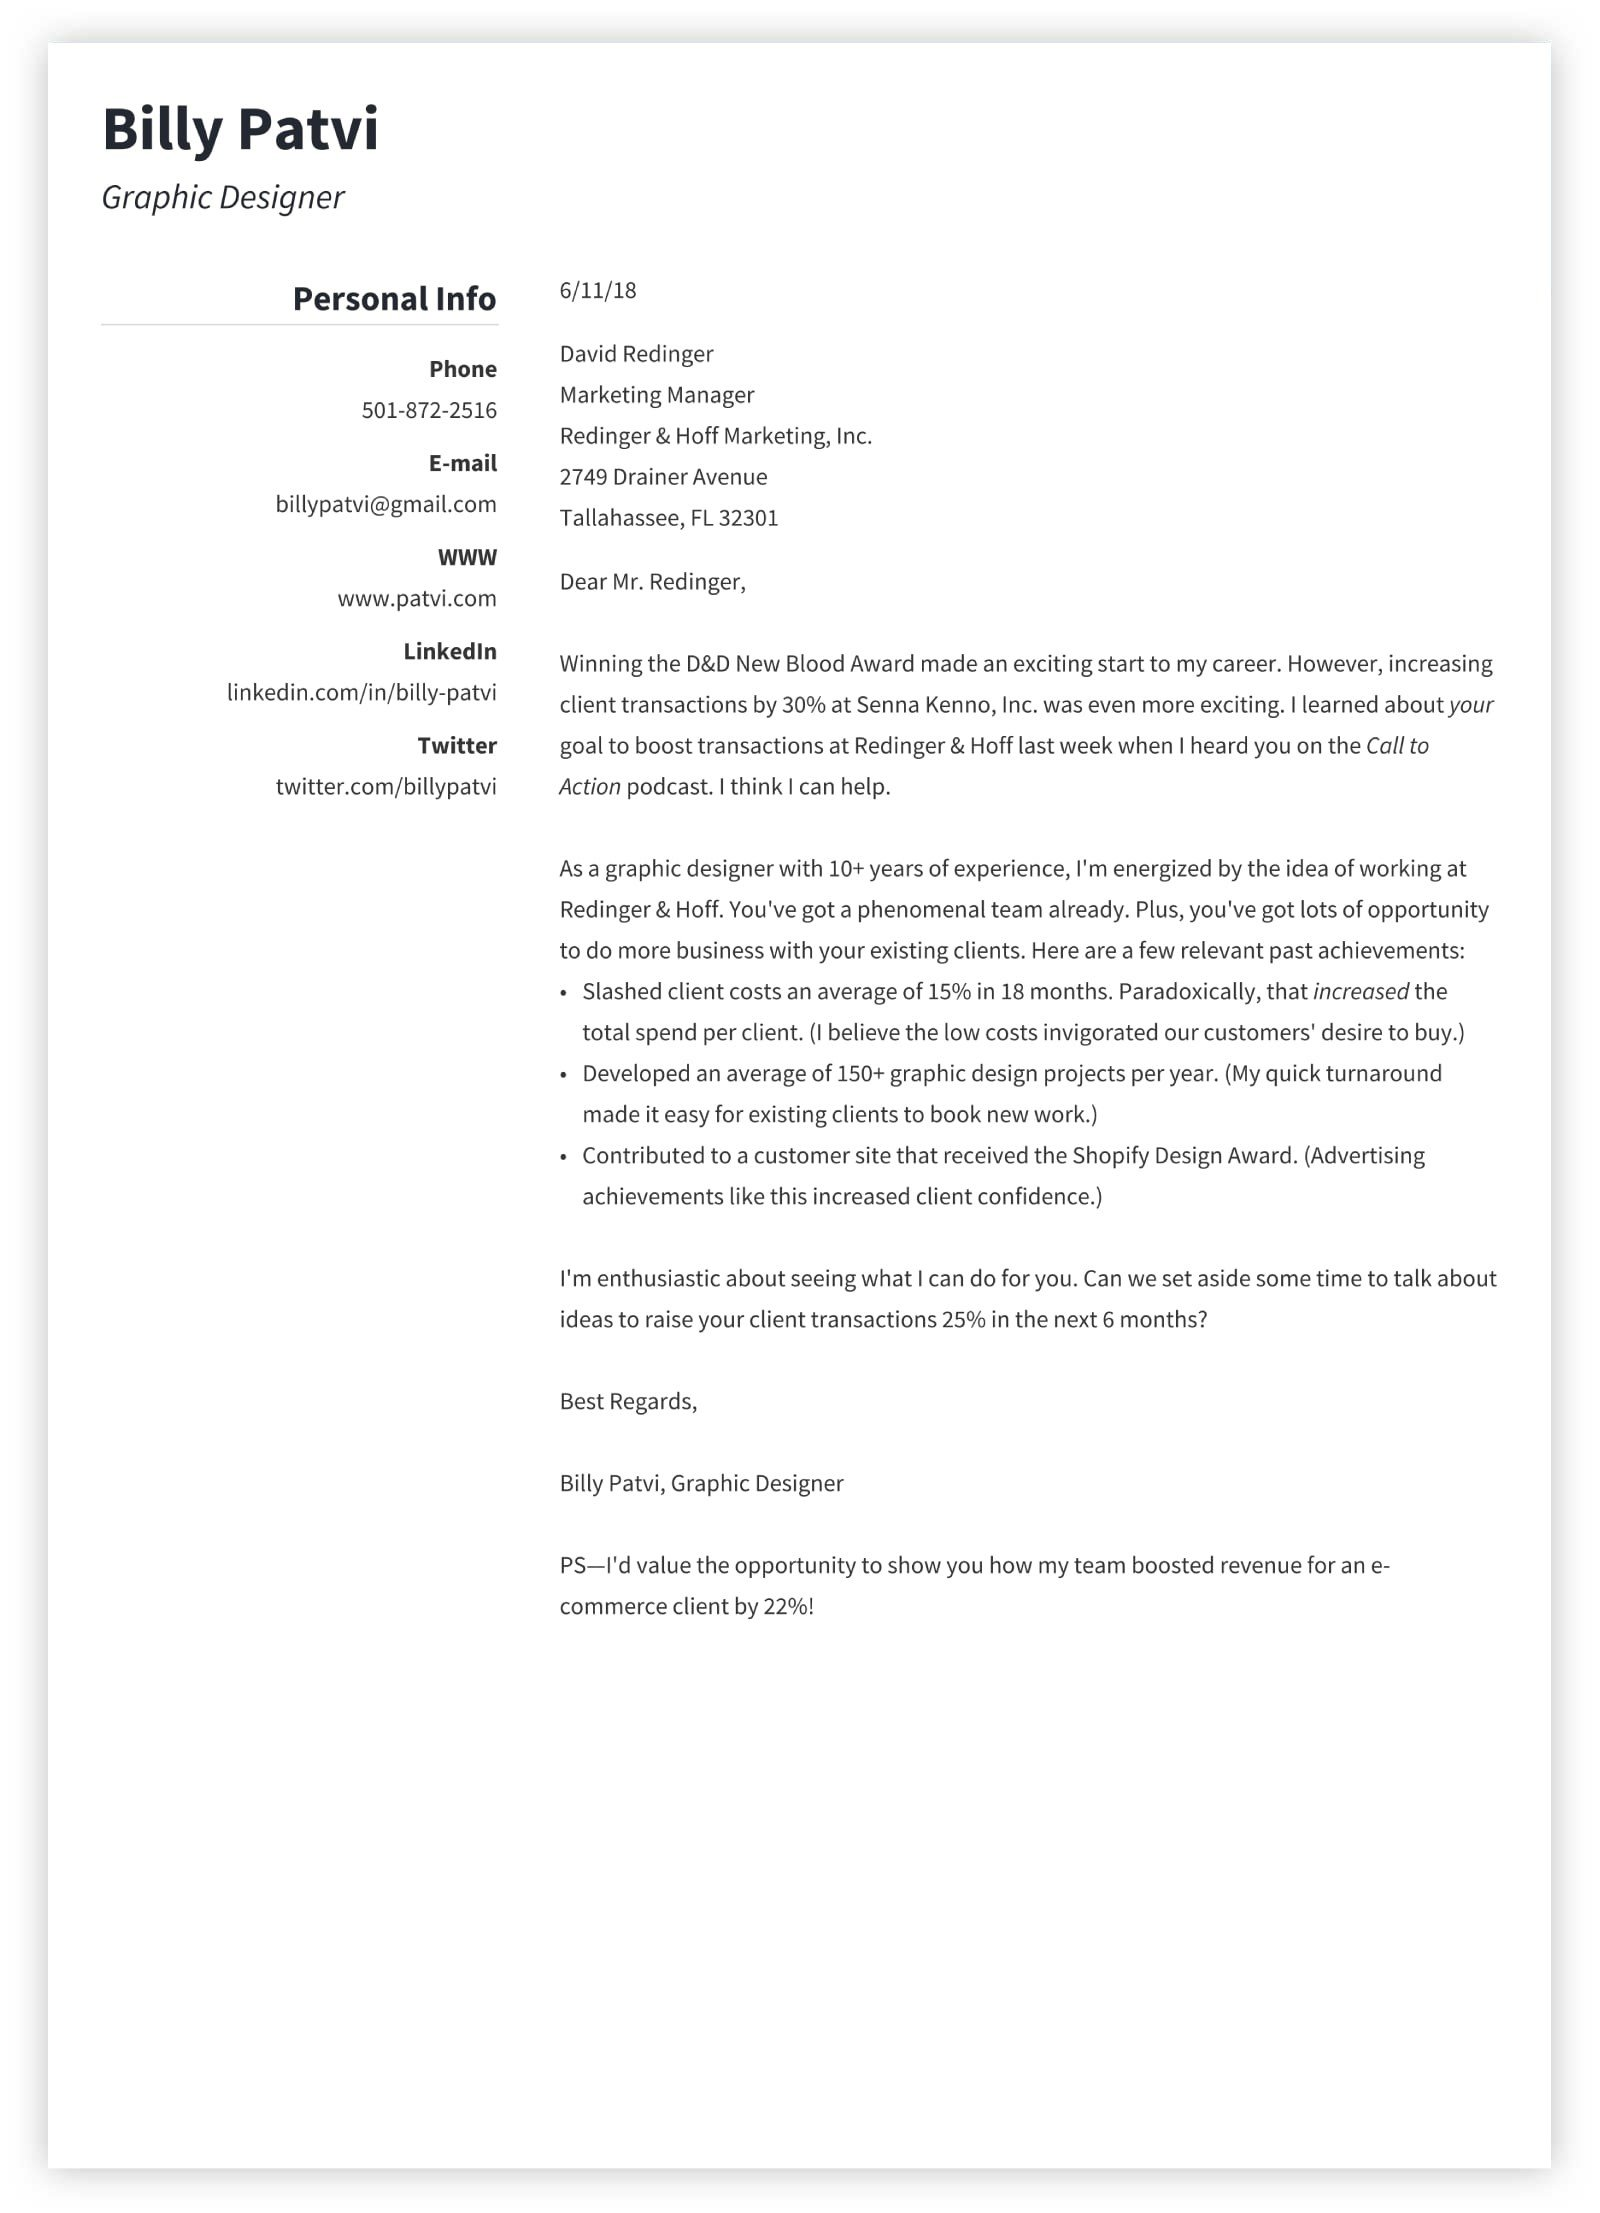 Examples Of Resume Cover Letter from cdn-images.zety.com